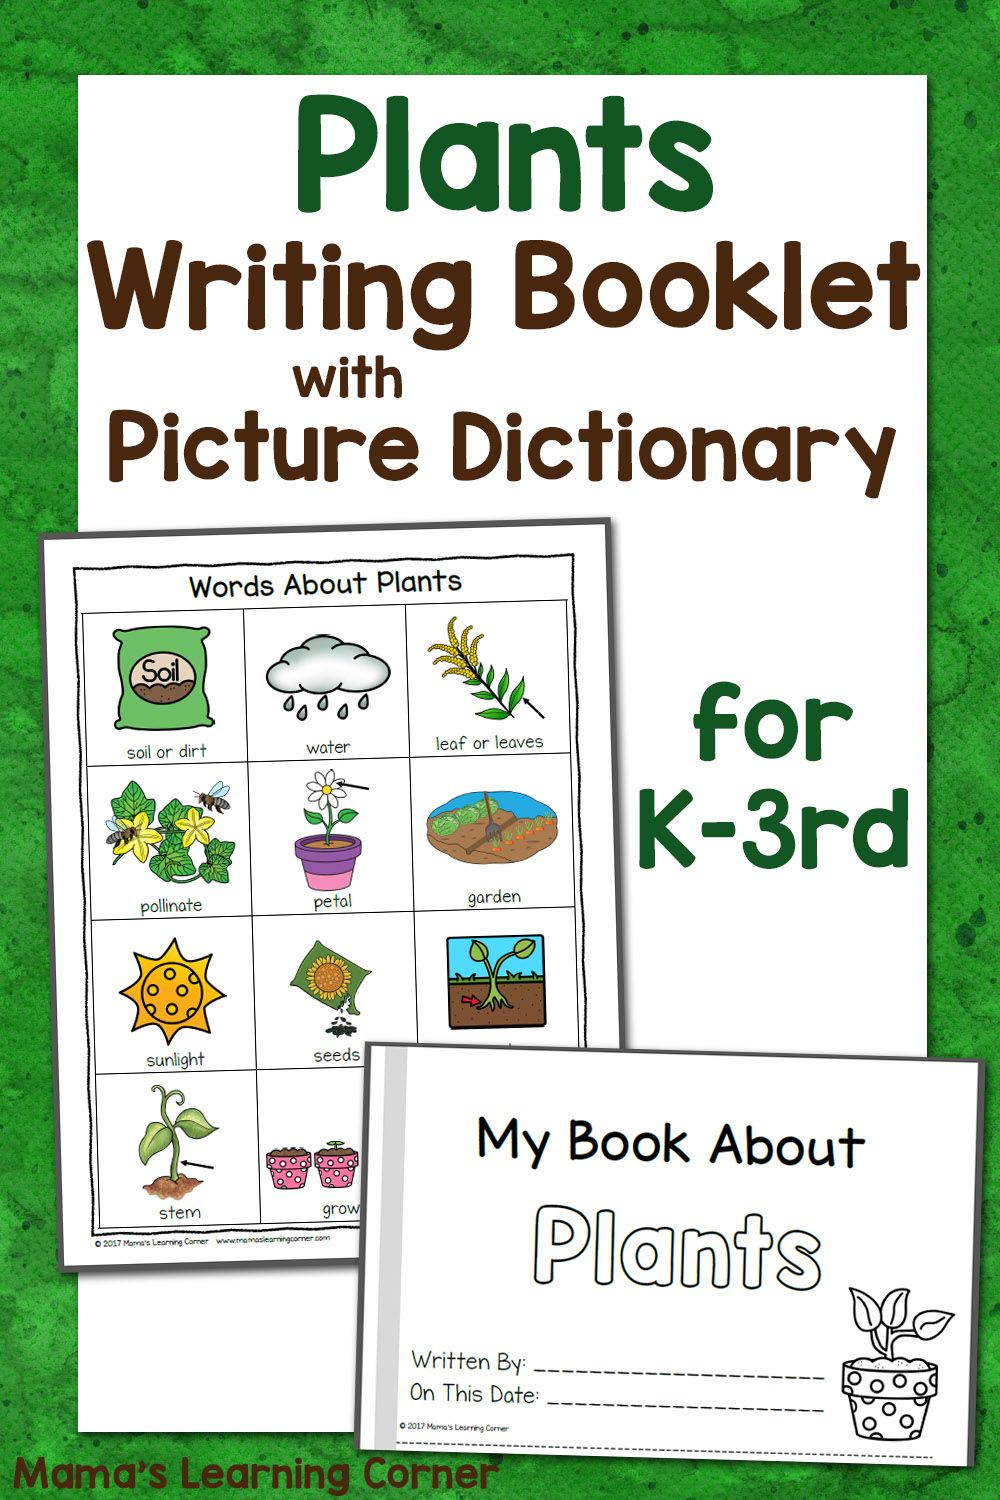 Plants Writing Booklet With Picture Dictionary Dictionary For Kids Picture Dictionary First Grade Science [ 1500 x 1000 Pixel ]